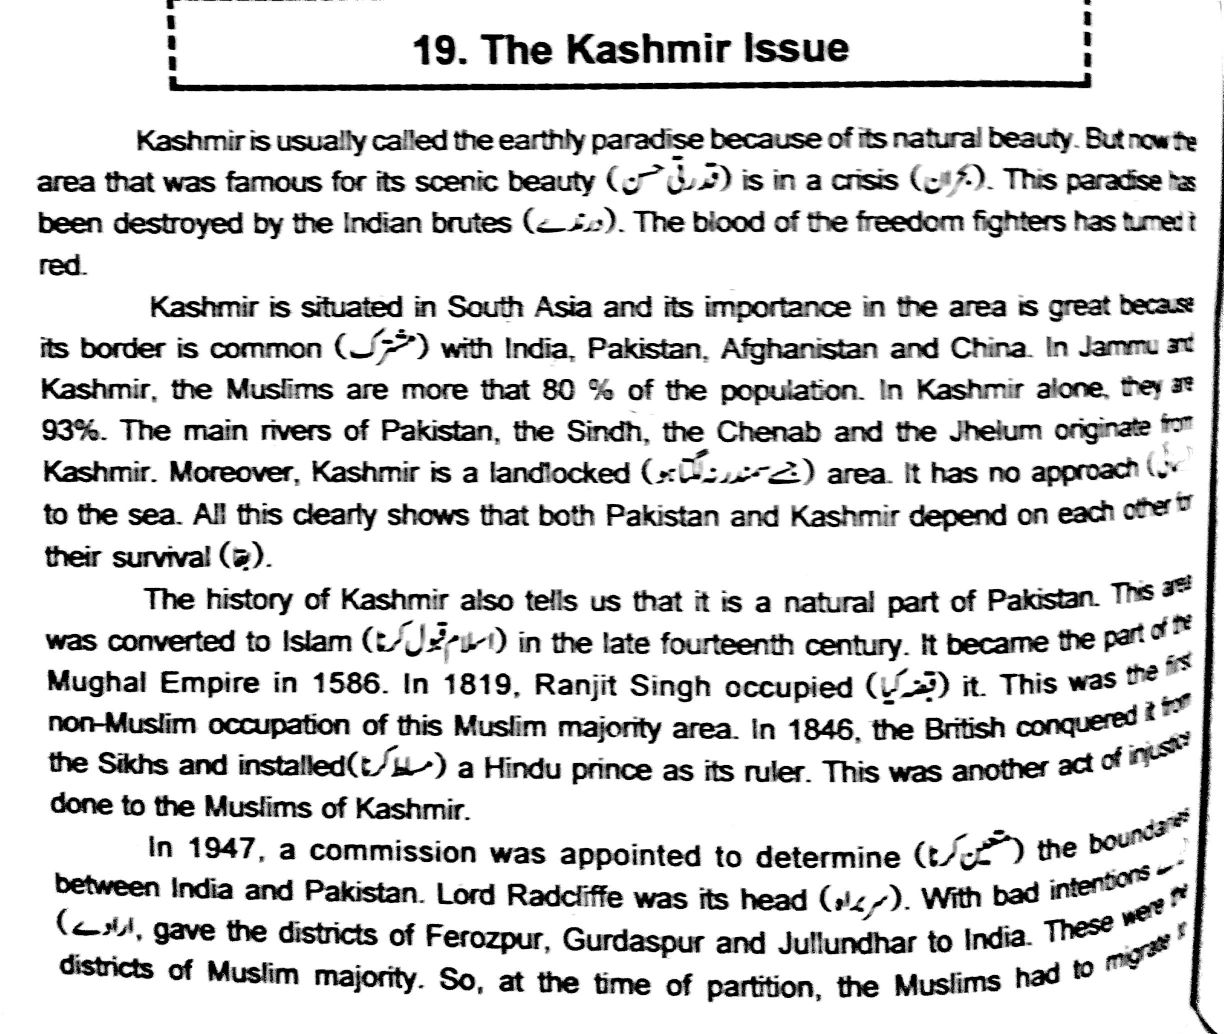 kashmir issue essay pak education info the kashmir problem essay the kashmir issue essay in english for students honey notesshort essay on kashmir problem kashmir issue